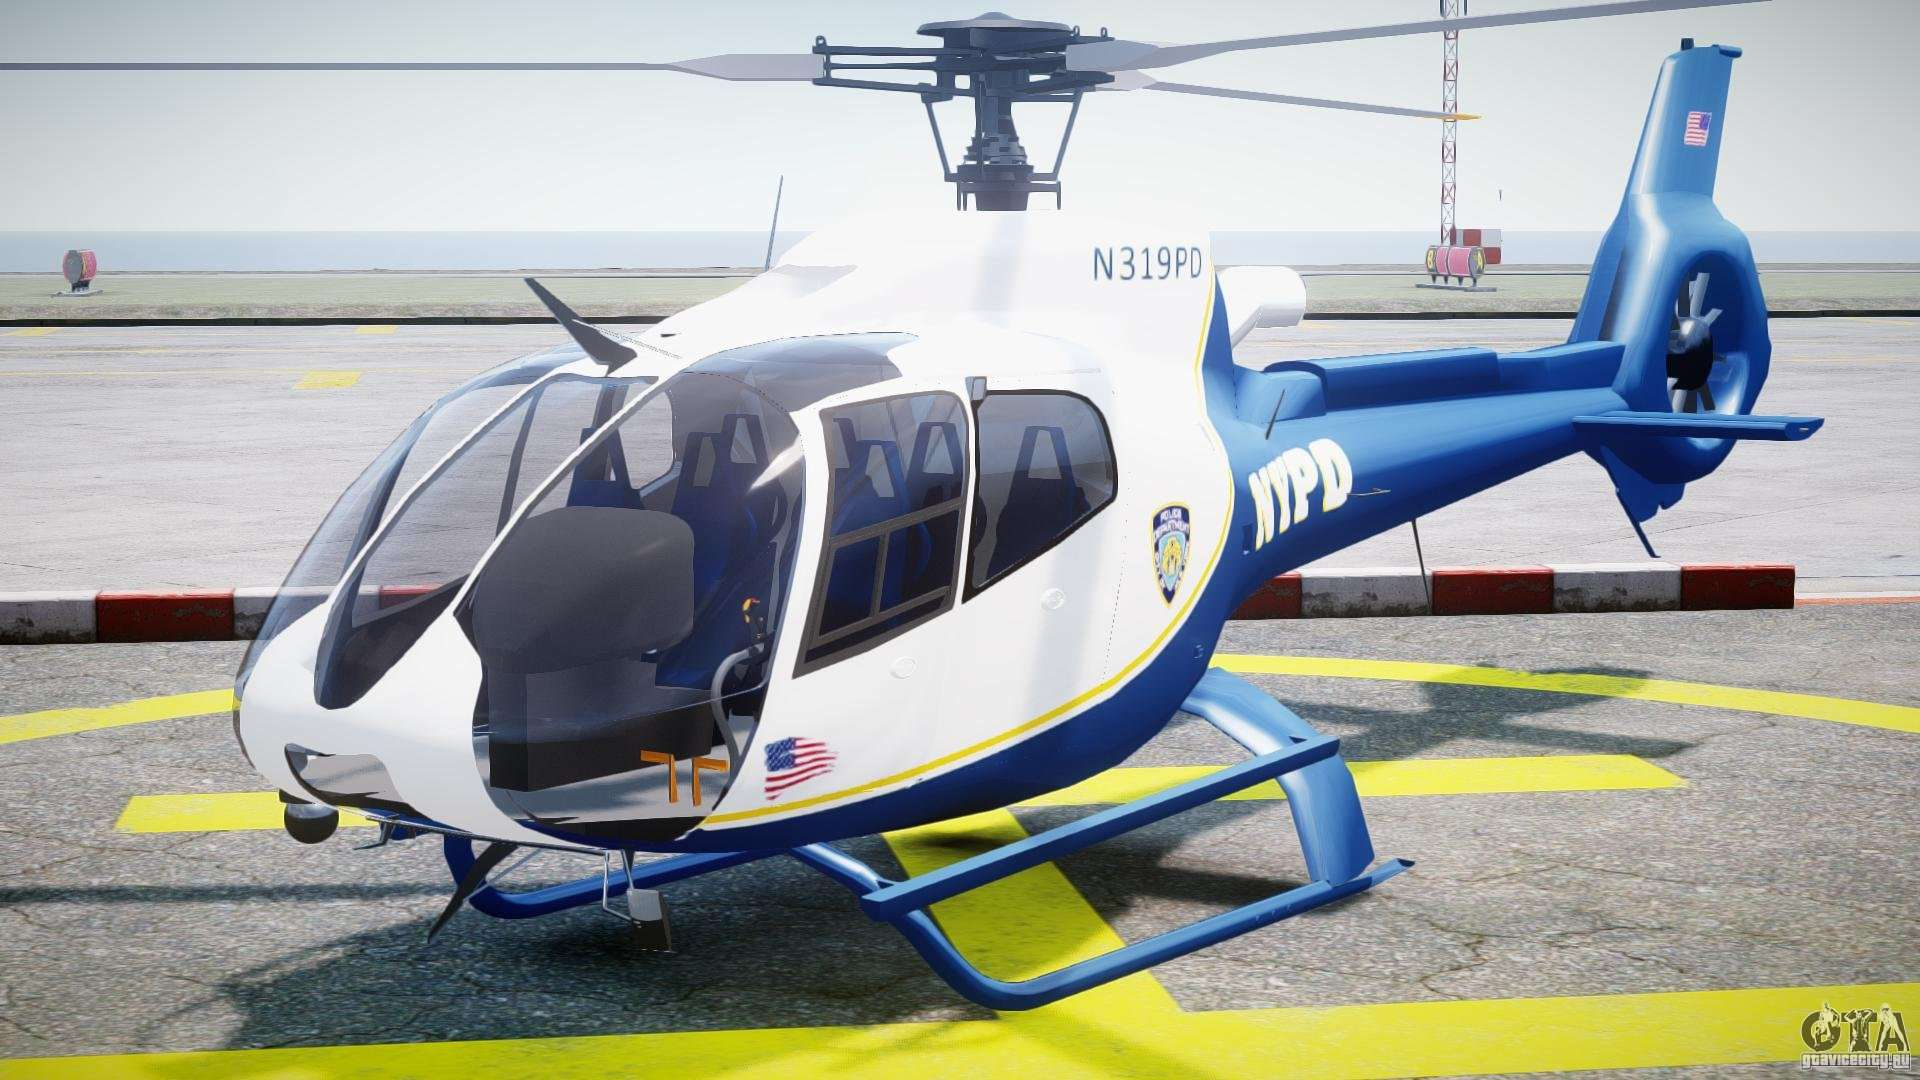 gta iv helicopter with 14884 Eurocopter Ec 130 Nypd on Official Screenshots in addition Battle of Los Santos LTS furthermore 30659 Ducati Desmosedici Rr 2012 html further Watchdogs V Hacks Script Mod By Julionib also Watch.